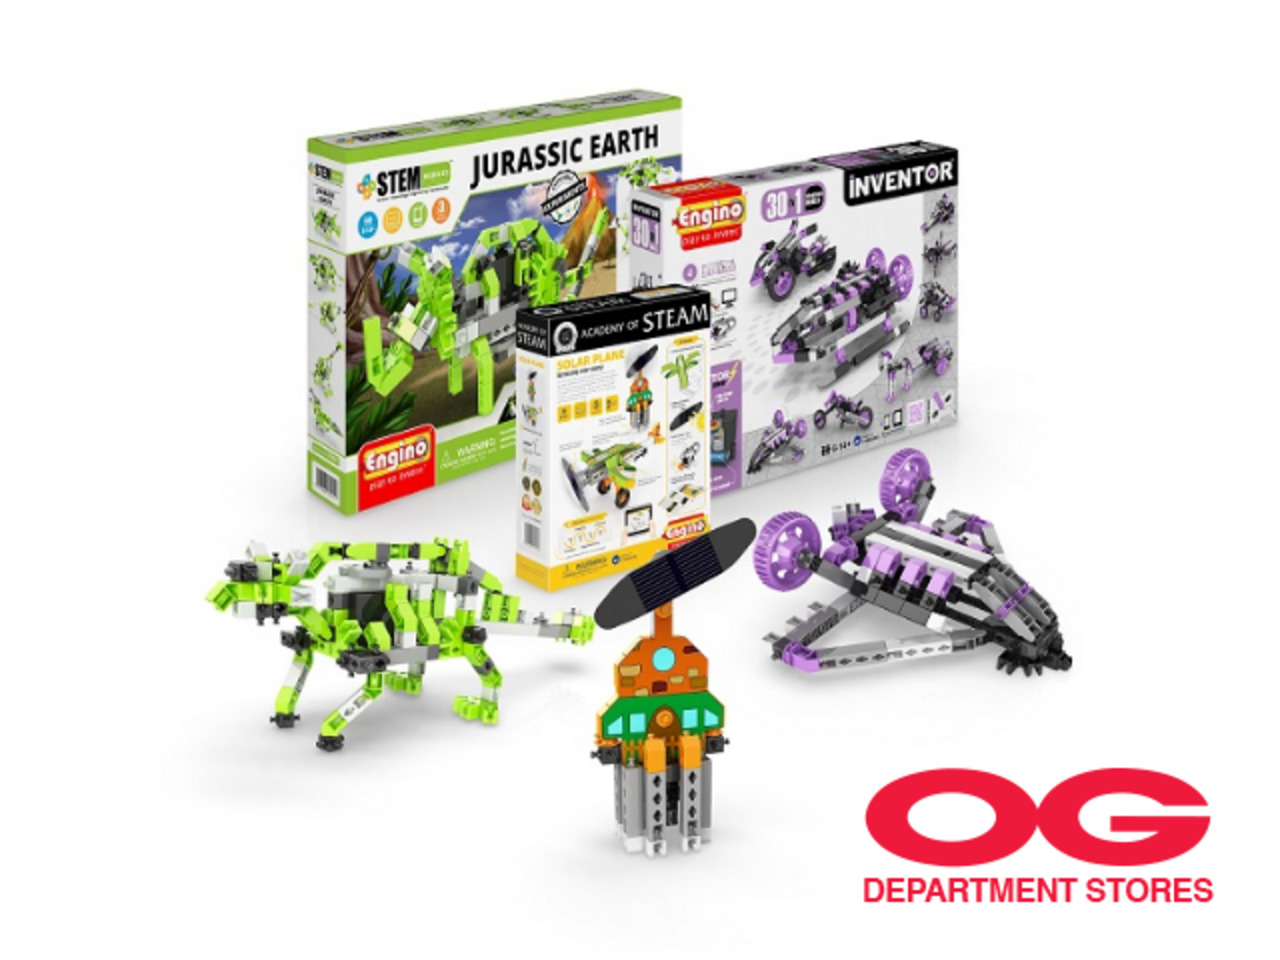 ENGINO Assorted Construction Kits @ Choose any 2 and get the lower-priced item free!